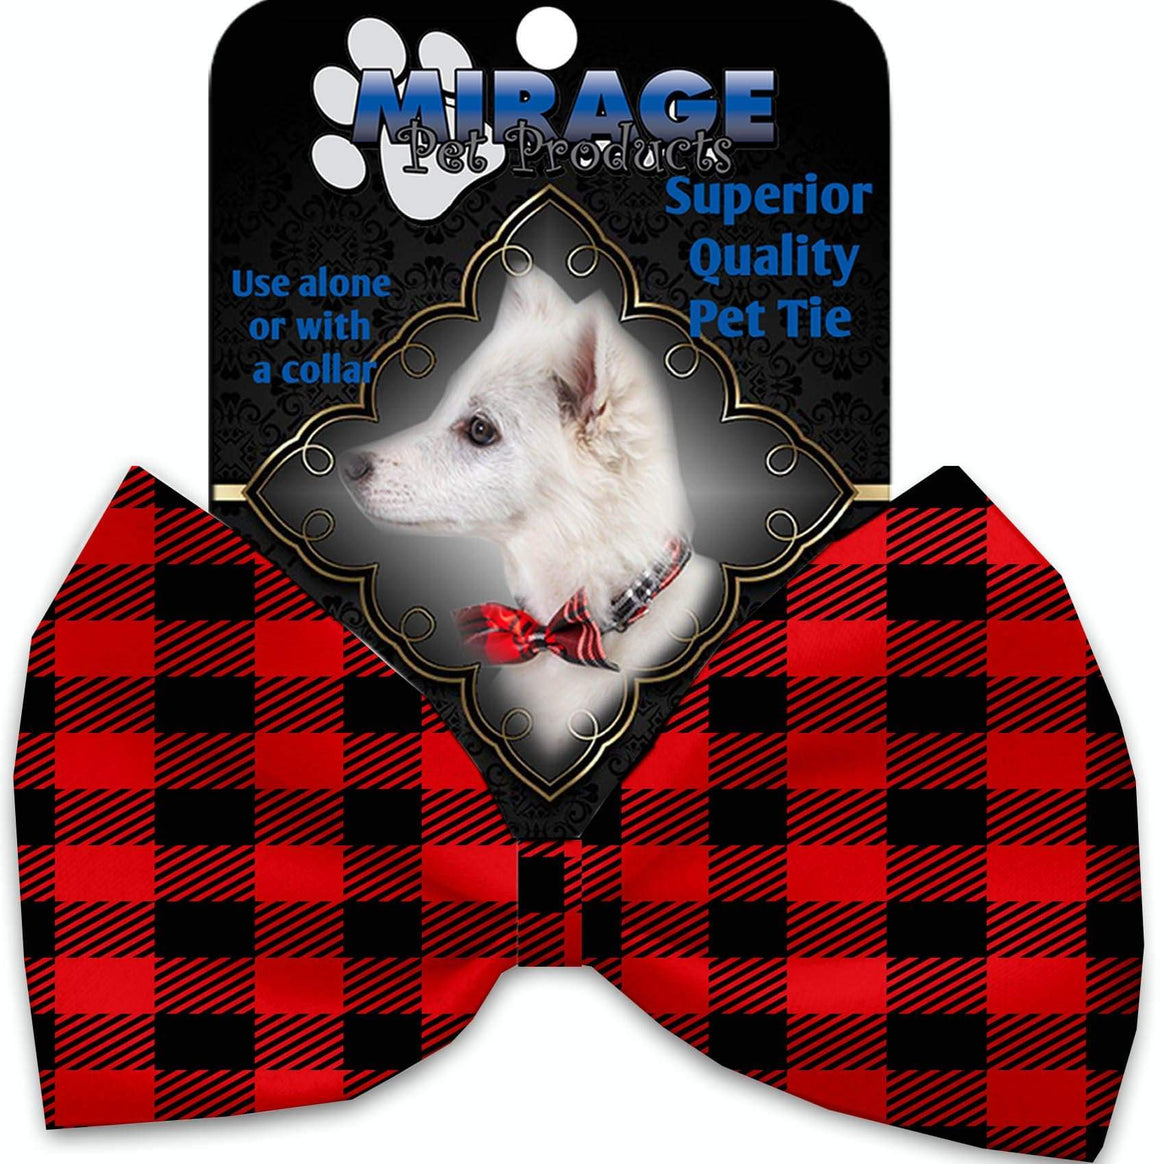 Doggy Stylz Dog-products Grooming Red Buffalo Check Pet Bow Tie Accessory With Velcro